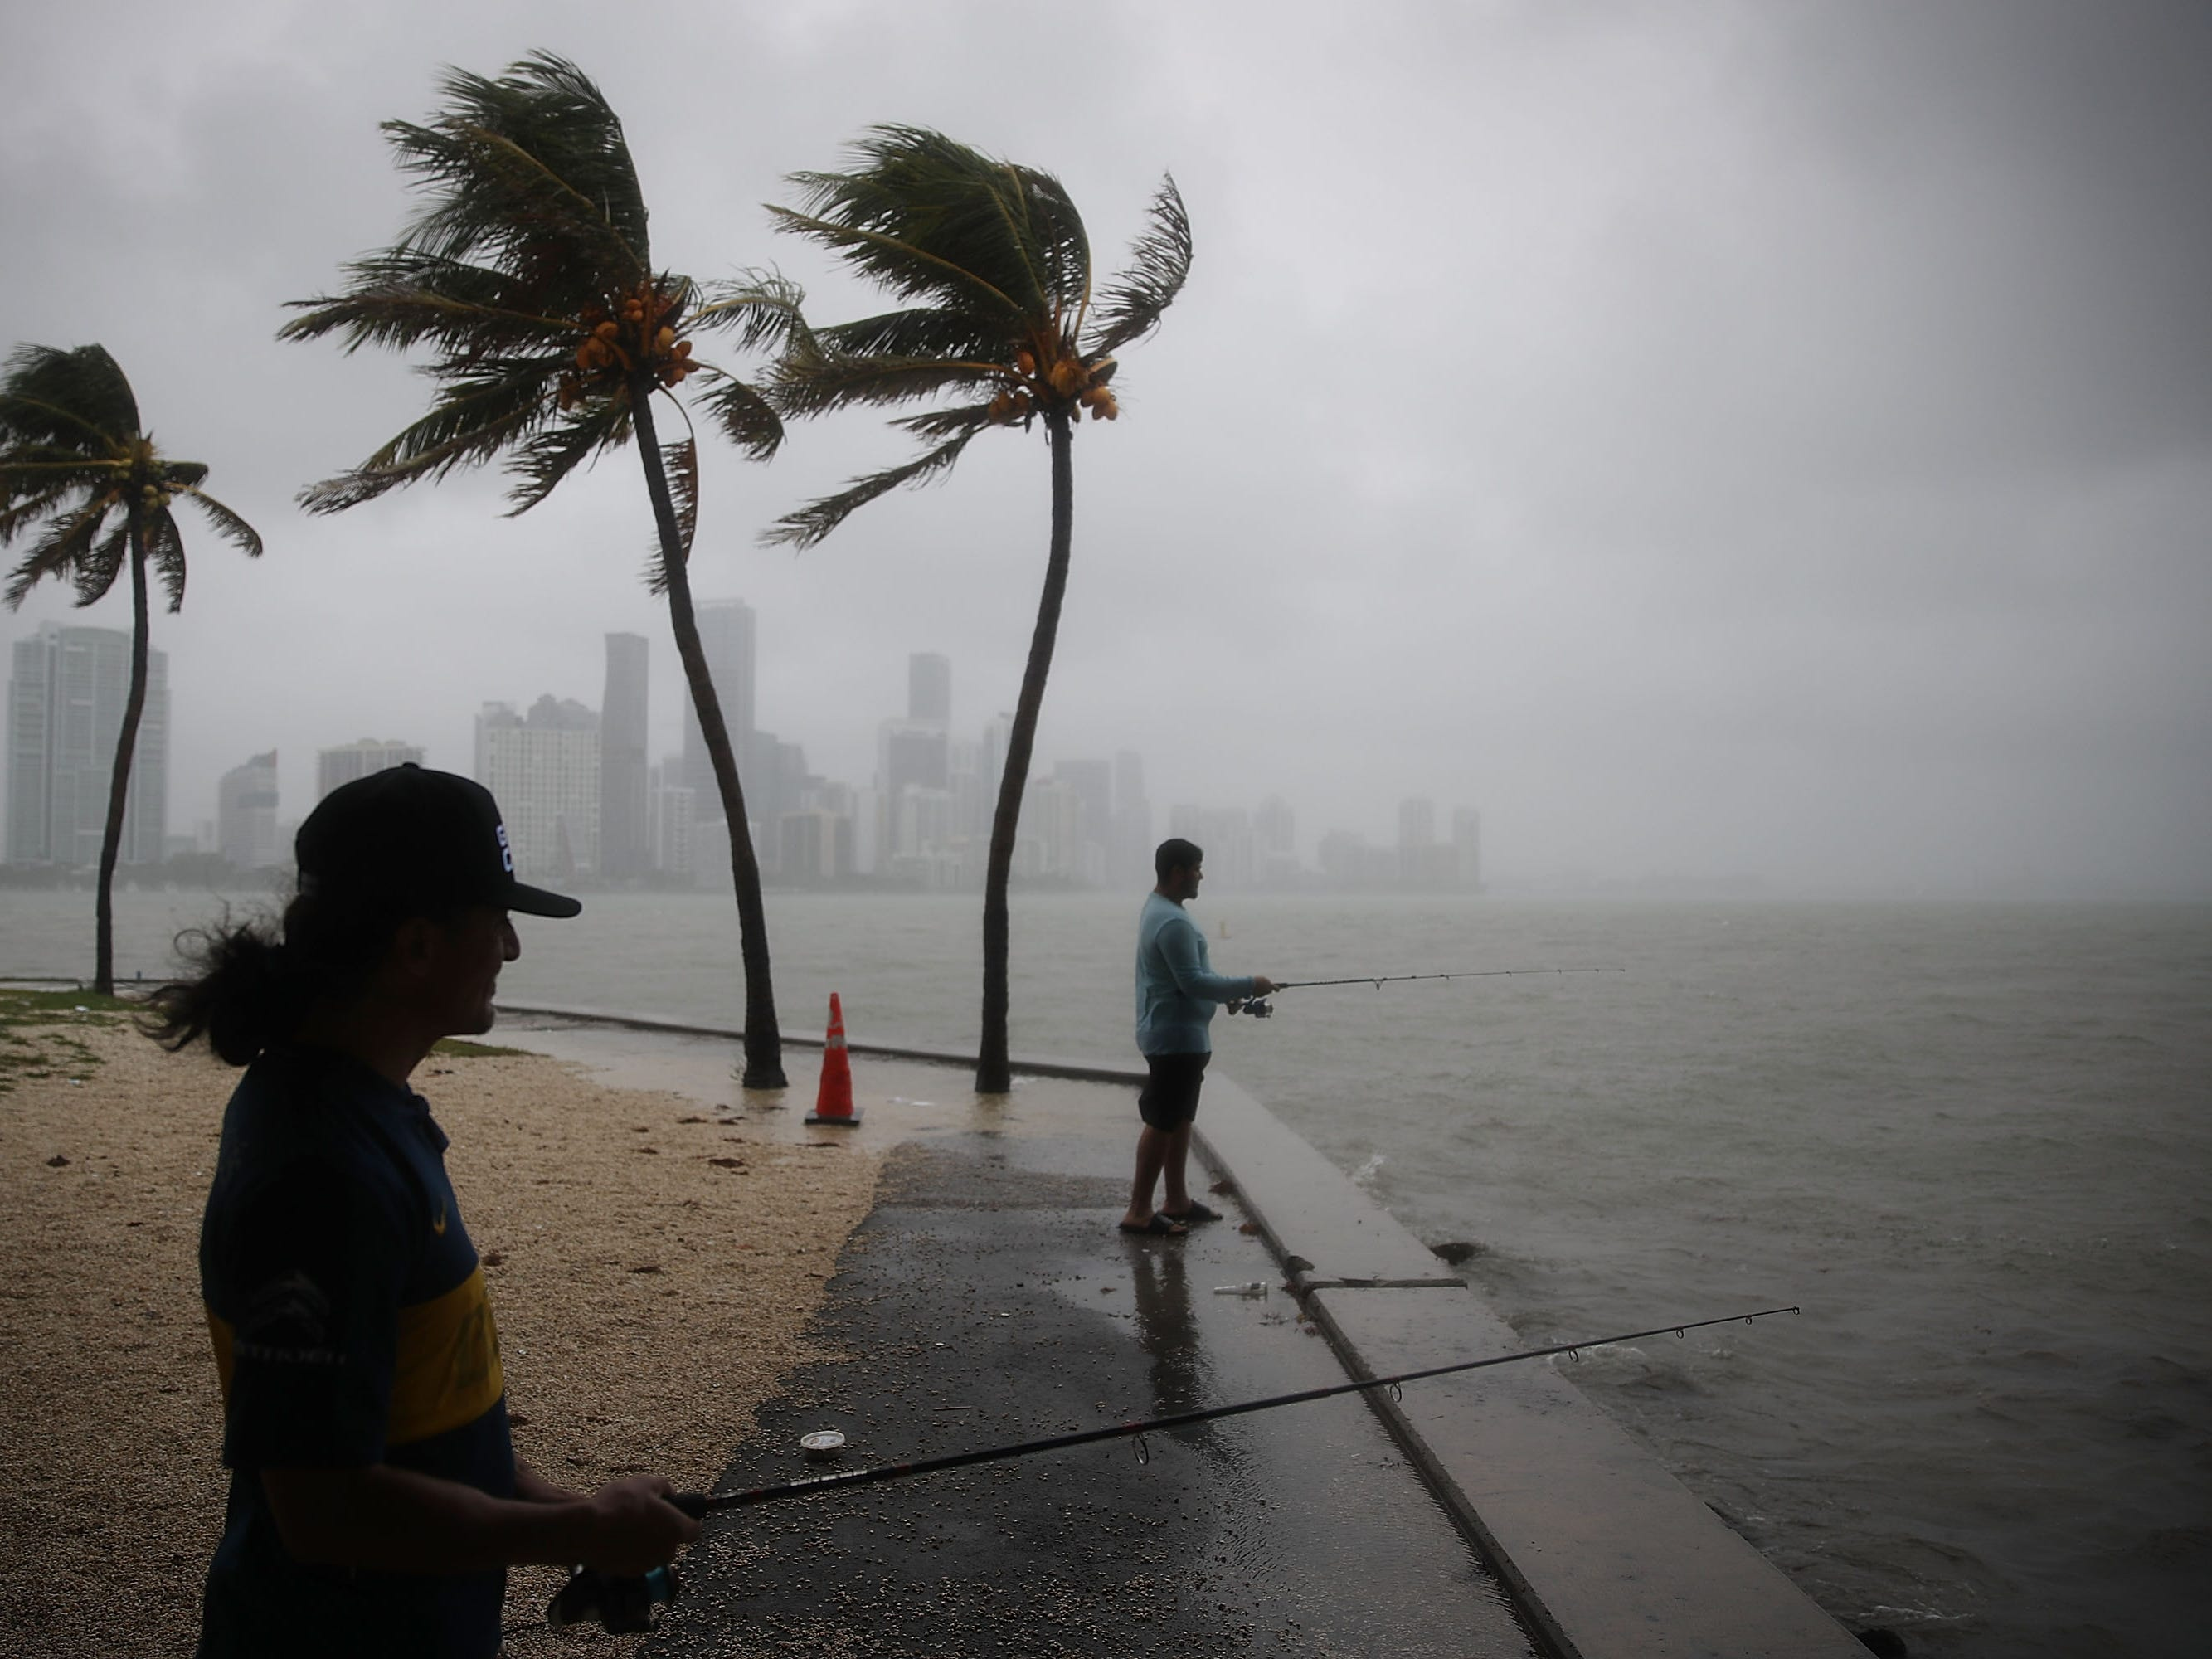 Walter Augier, left, and Jhon M. fish as rain and wind are whipped up by Tropical Storm Gordon on Sept. 3, 2018 in Miami.  Tropical Storm Gordon is heading into the Gulf of Mexico bringing heavy rain and gusty winds to South Florida as it heads for a northern Gulf Coast landfall.